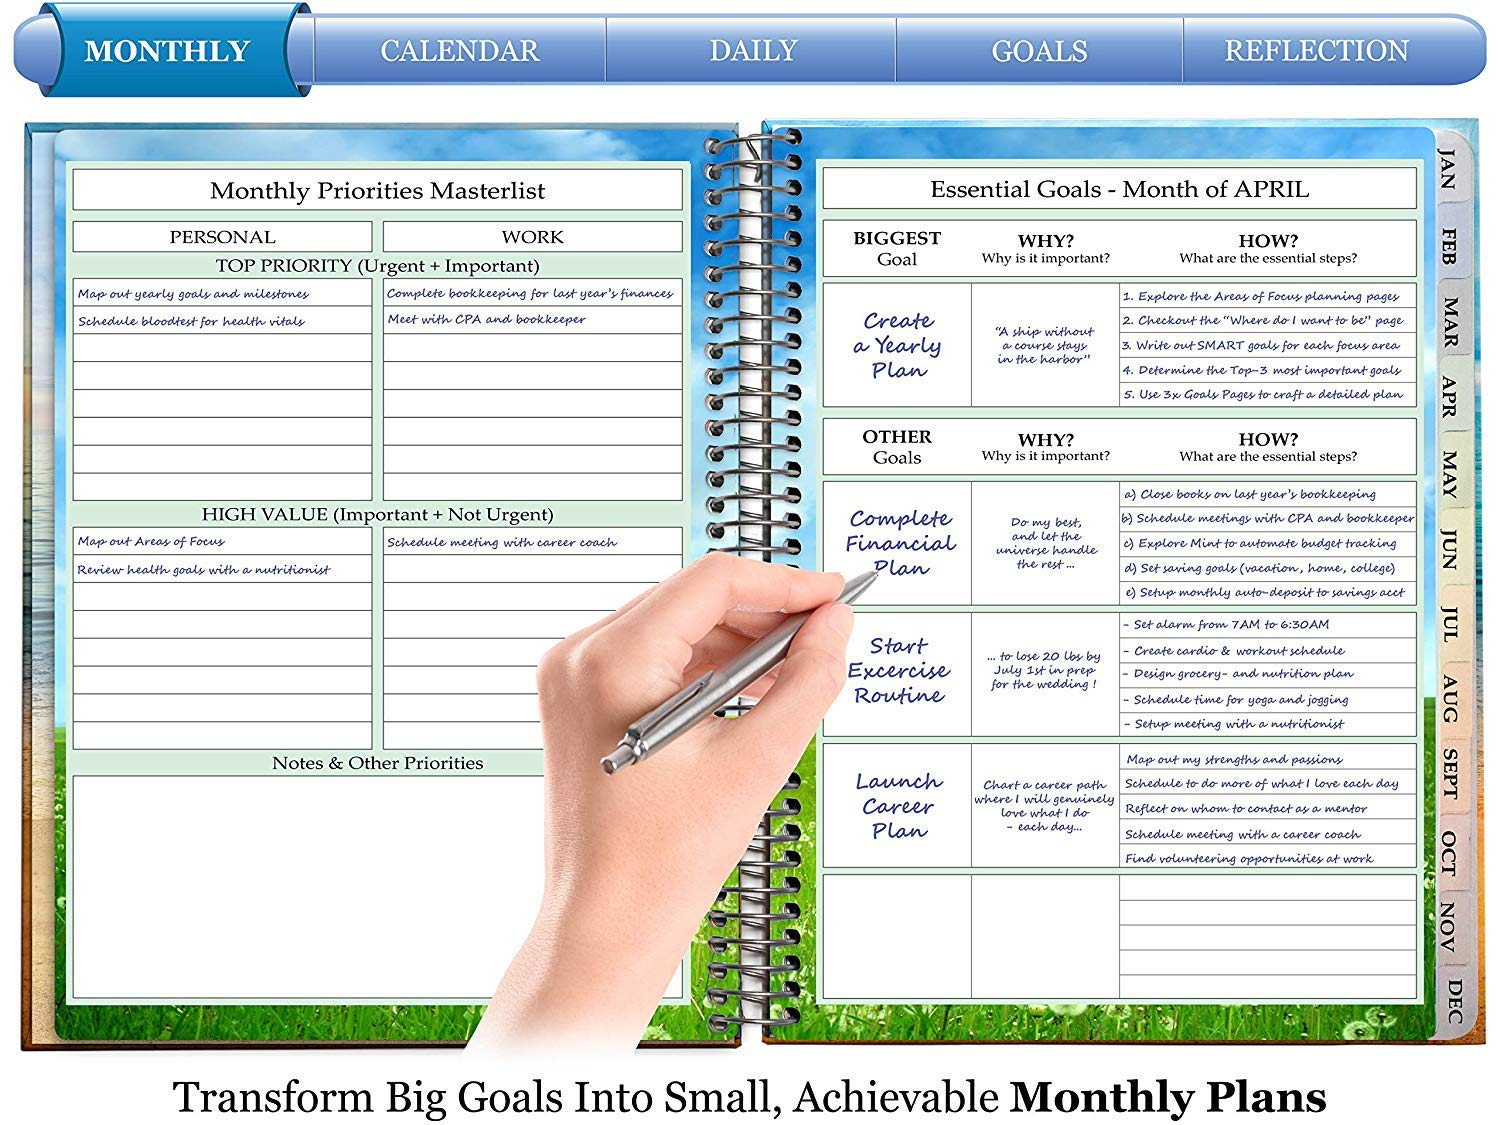 2019-2020 Planner - April 2019 to June 2020 - Daily Weekly Monthly - 8.5'' x 11'' Hardcover - by Tools4Wisdom by Tools4Wisdom (Image #2)